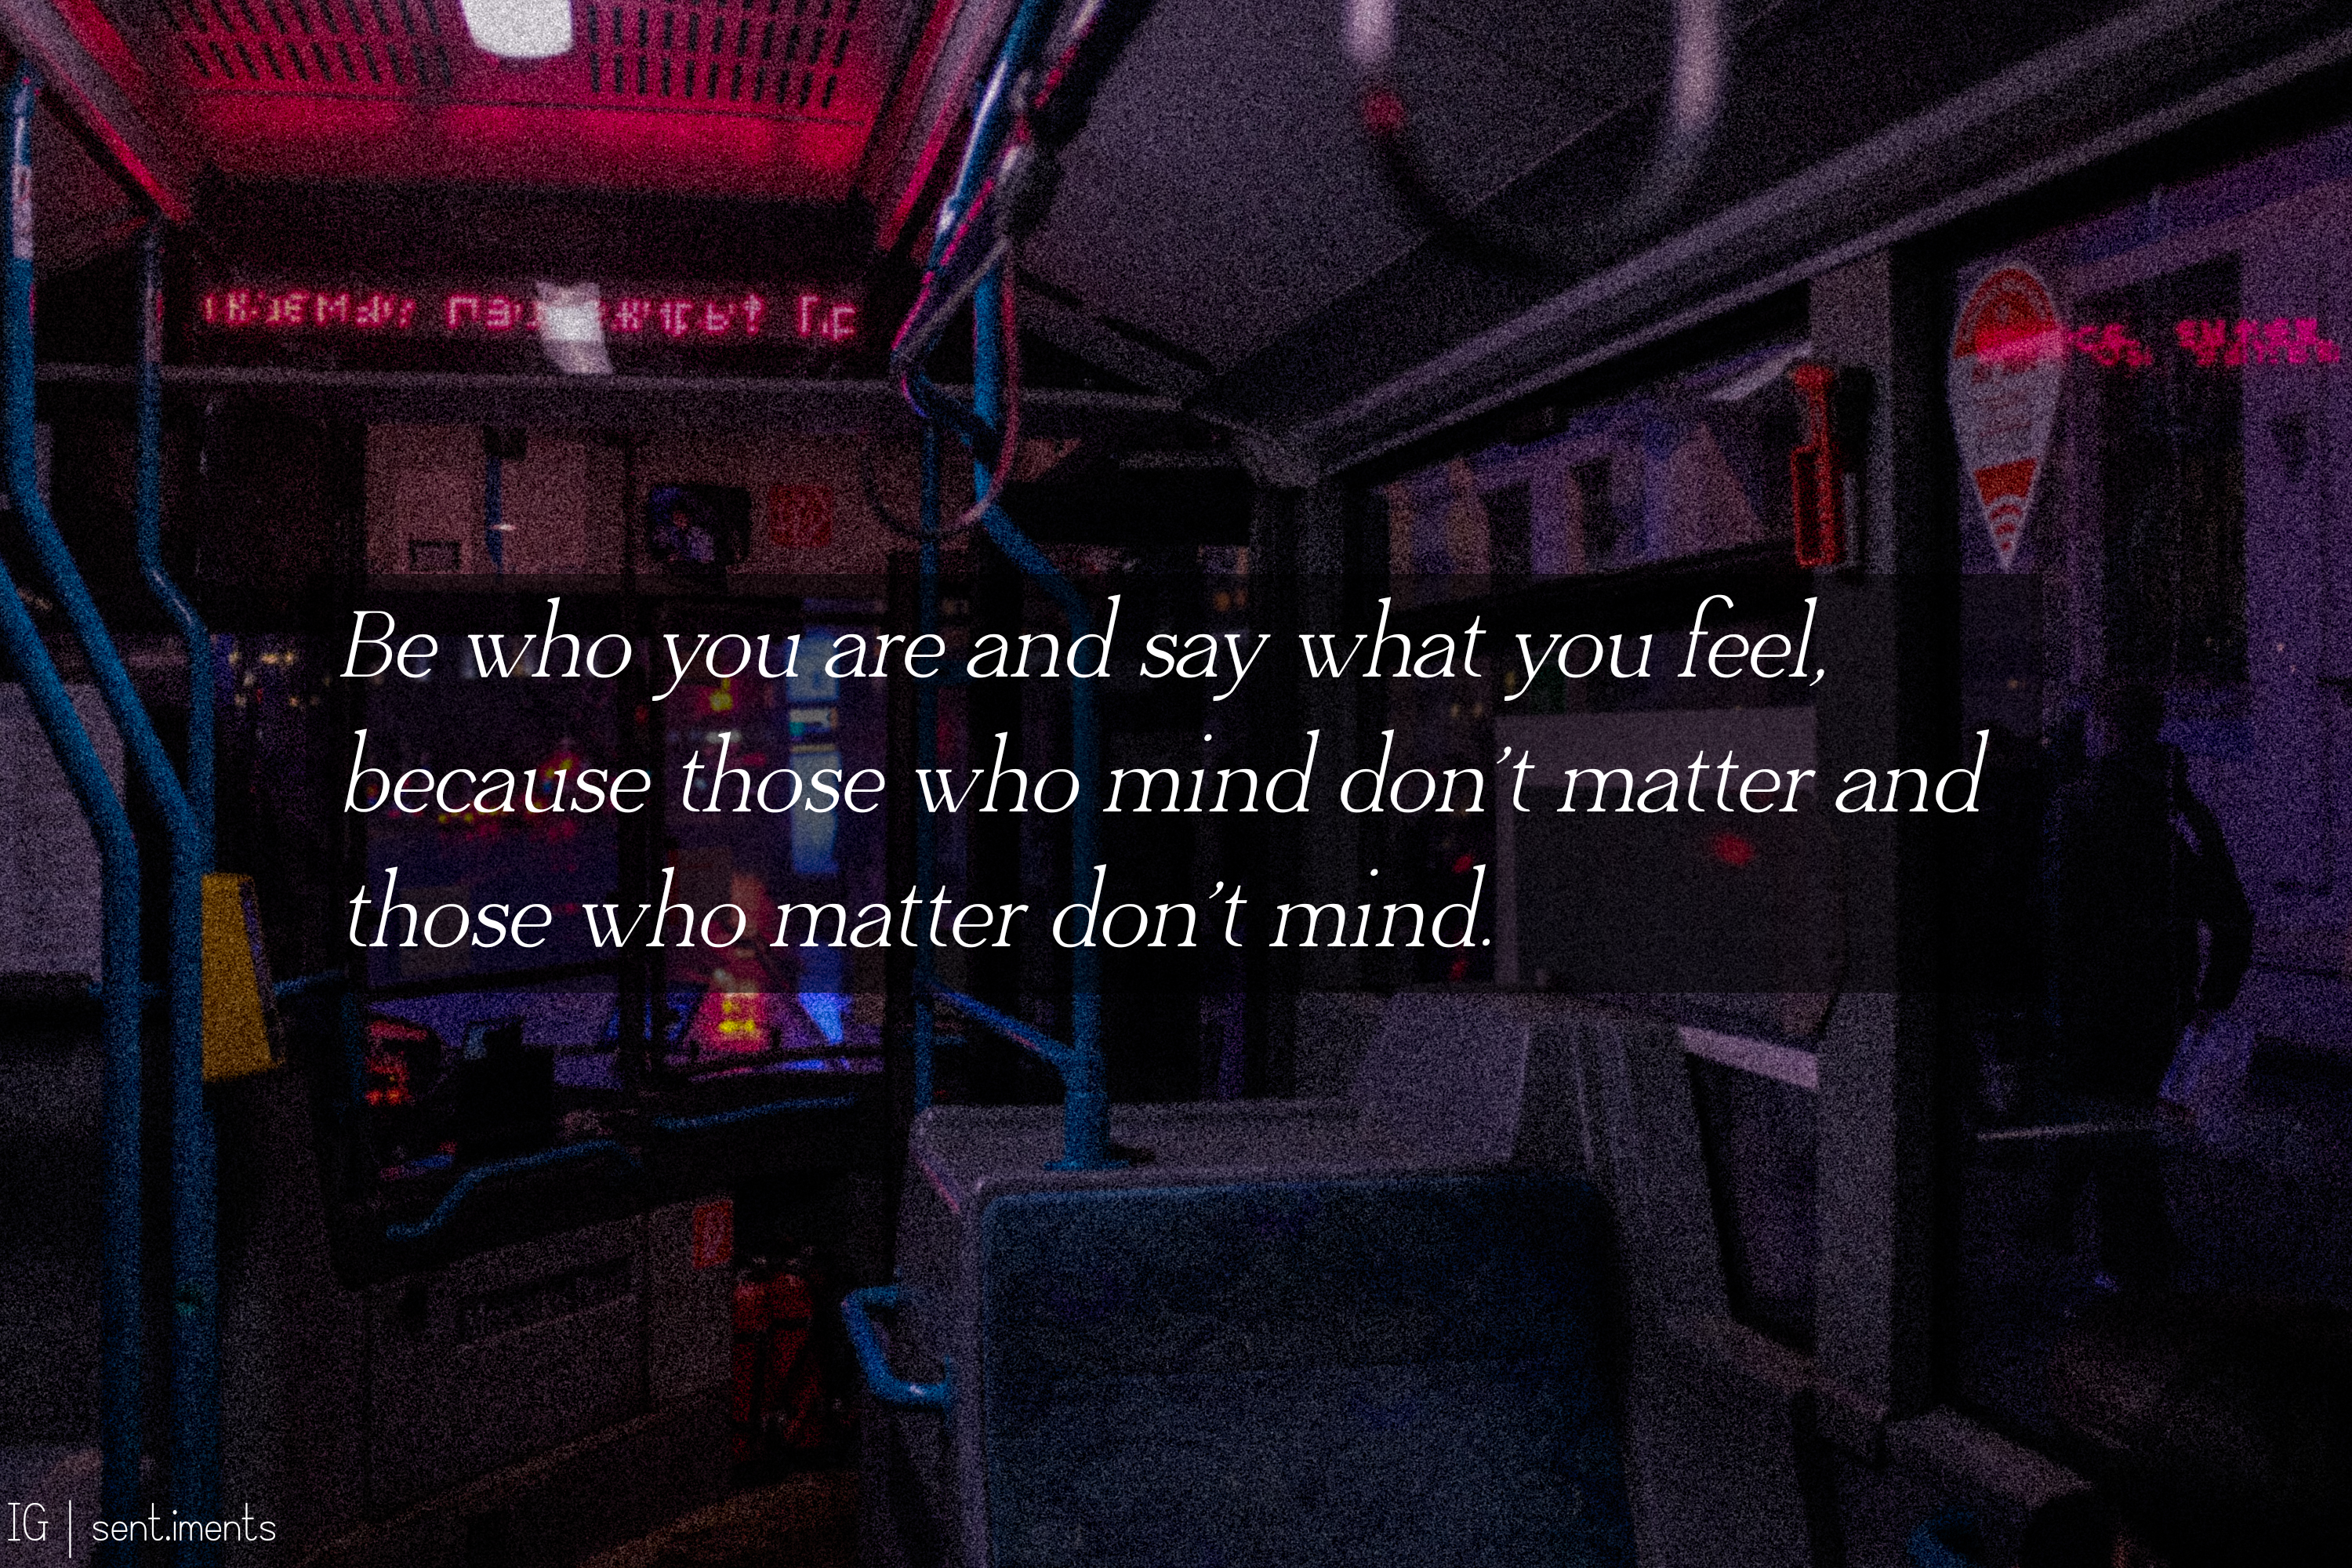 """Be who you are and say what you feel, because those who mind don't matter and those who matter don't mind."" by Dr. Seuss [3000 X 2000]"